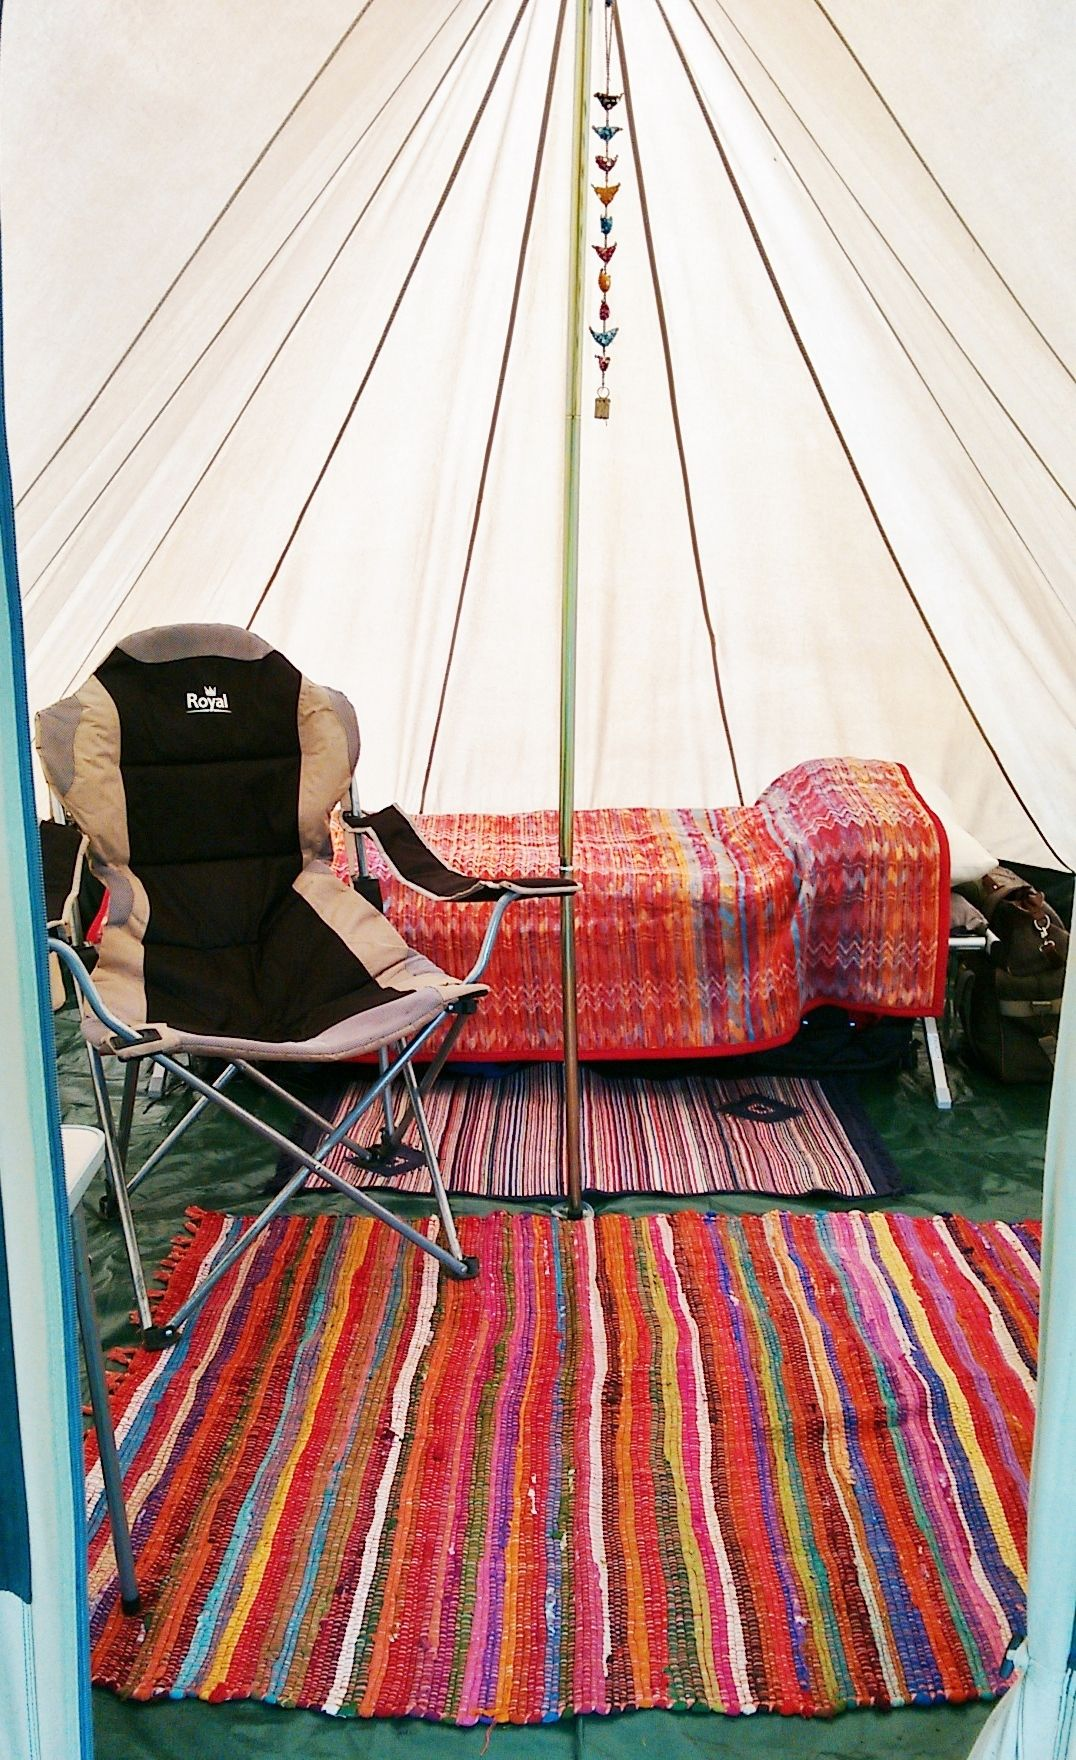 Pin by Sam Umek on Glamping/Camping Ideas Bell tent